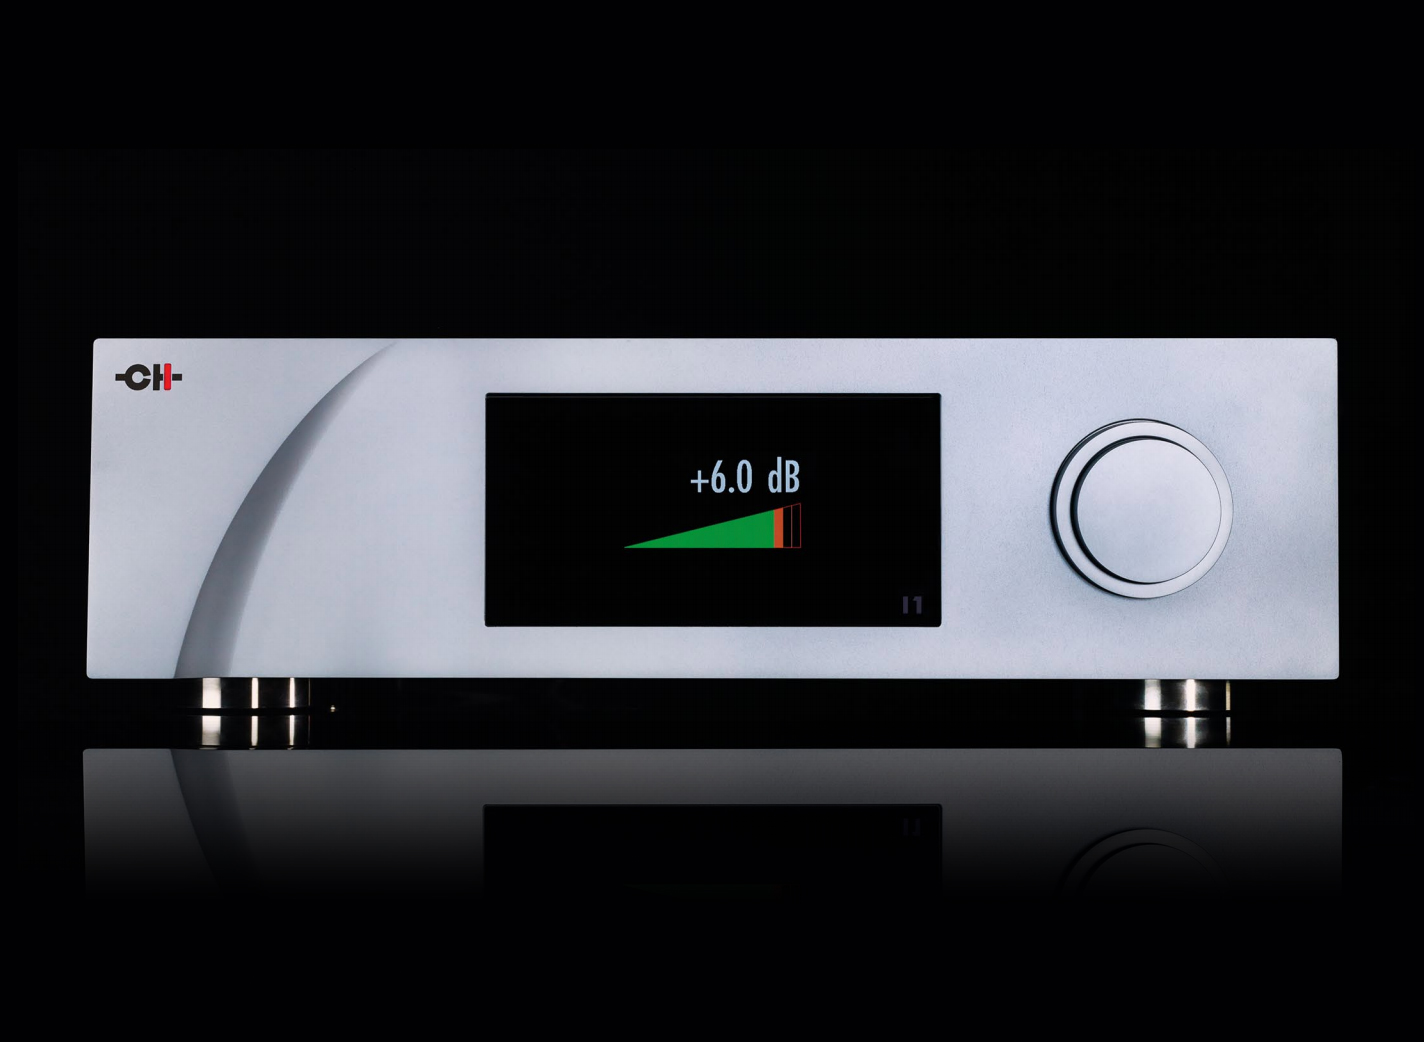 Wilson Benesch will demonstrate the new CH Precision I1 integrated amplifier for the first time in the U.K. at 'Sound & Vision' The Bristol Show